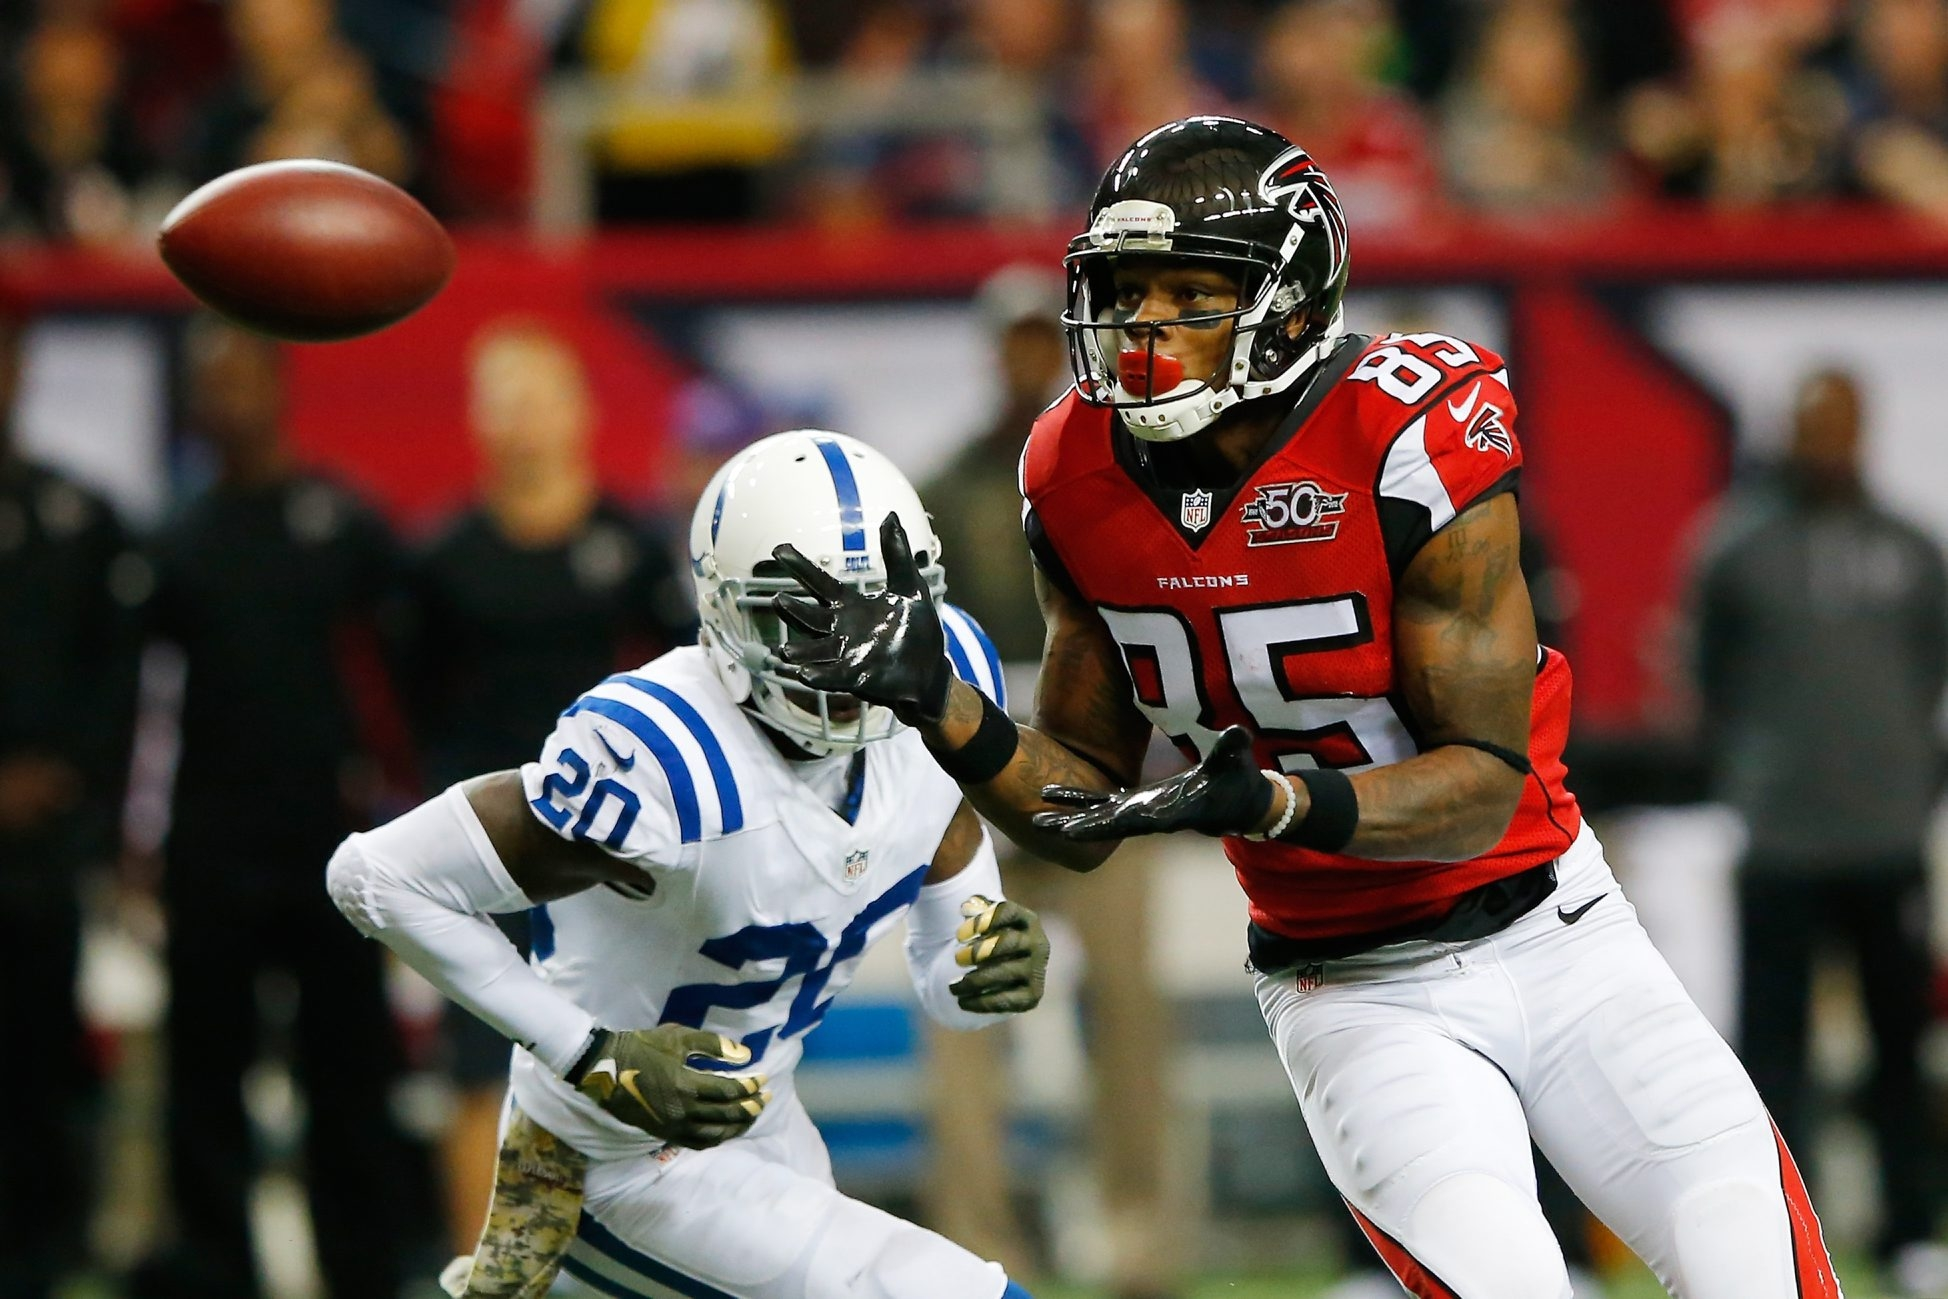 Leonard Hankerson has struggled with drops in the pros but has nine NFL touchdowns to his credit.